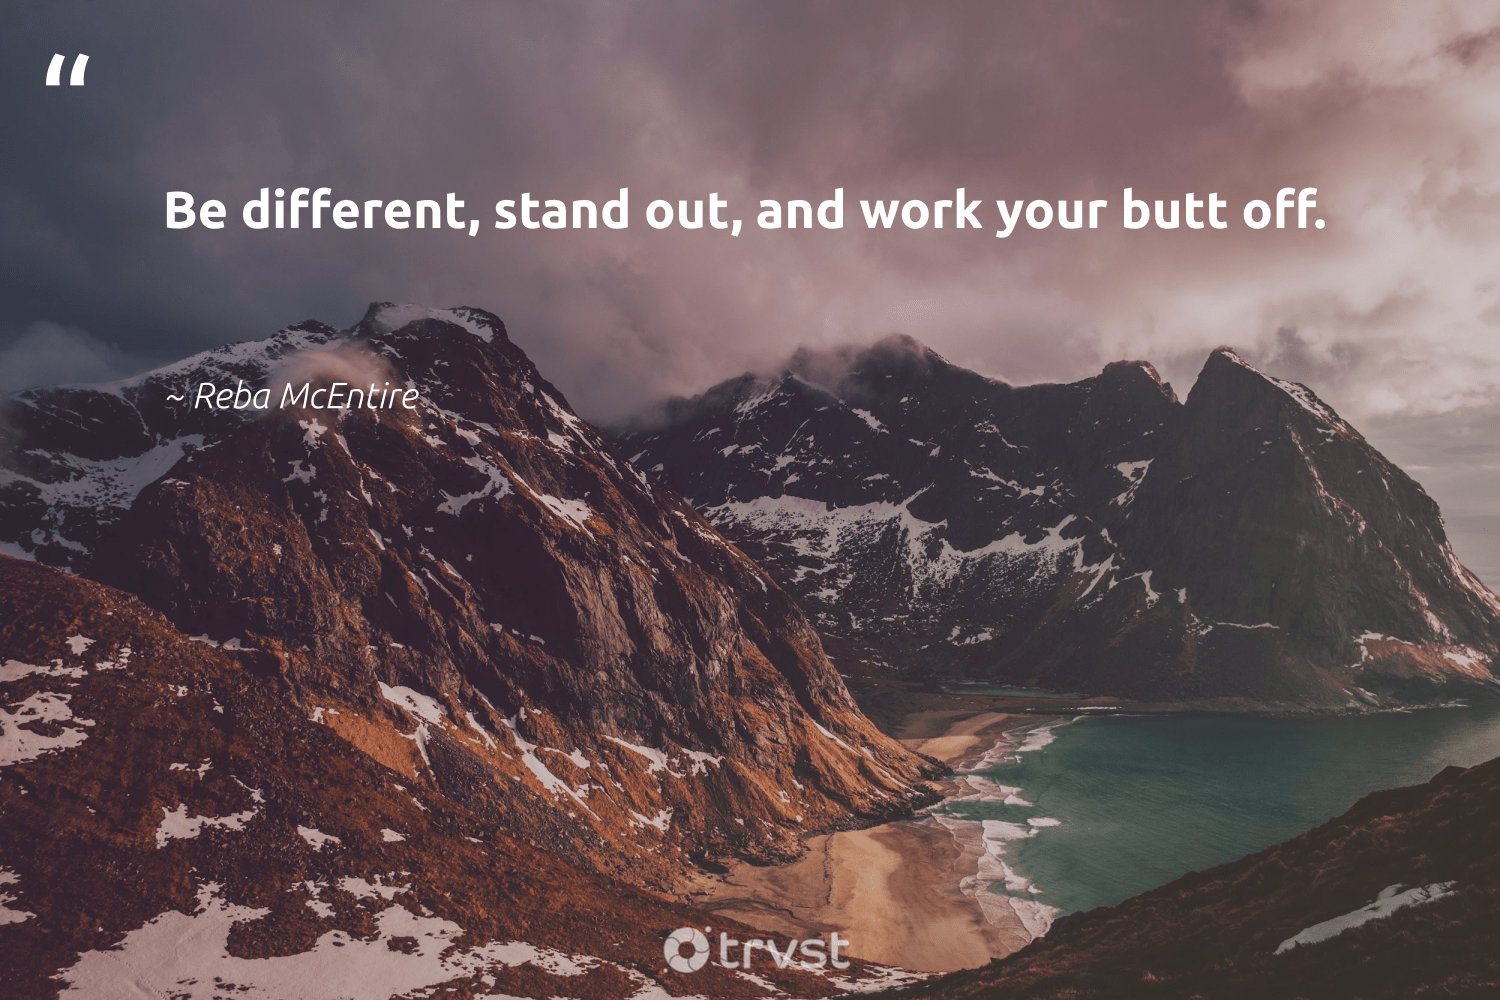 """""""Be different, stand out, and work your butt off.""""  - Reba McEntire #trvst #quotes #begreat #dogood #futureofwork #collectiveaction #nevergiveup #dosomething #softskills #bethechange #beinspired #socialchange"""